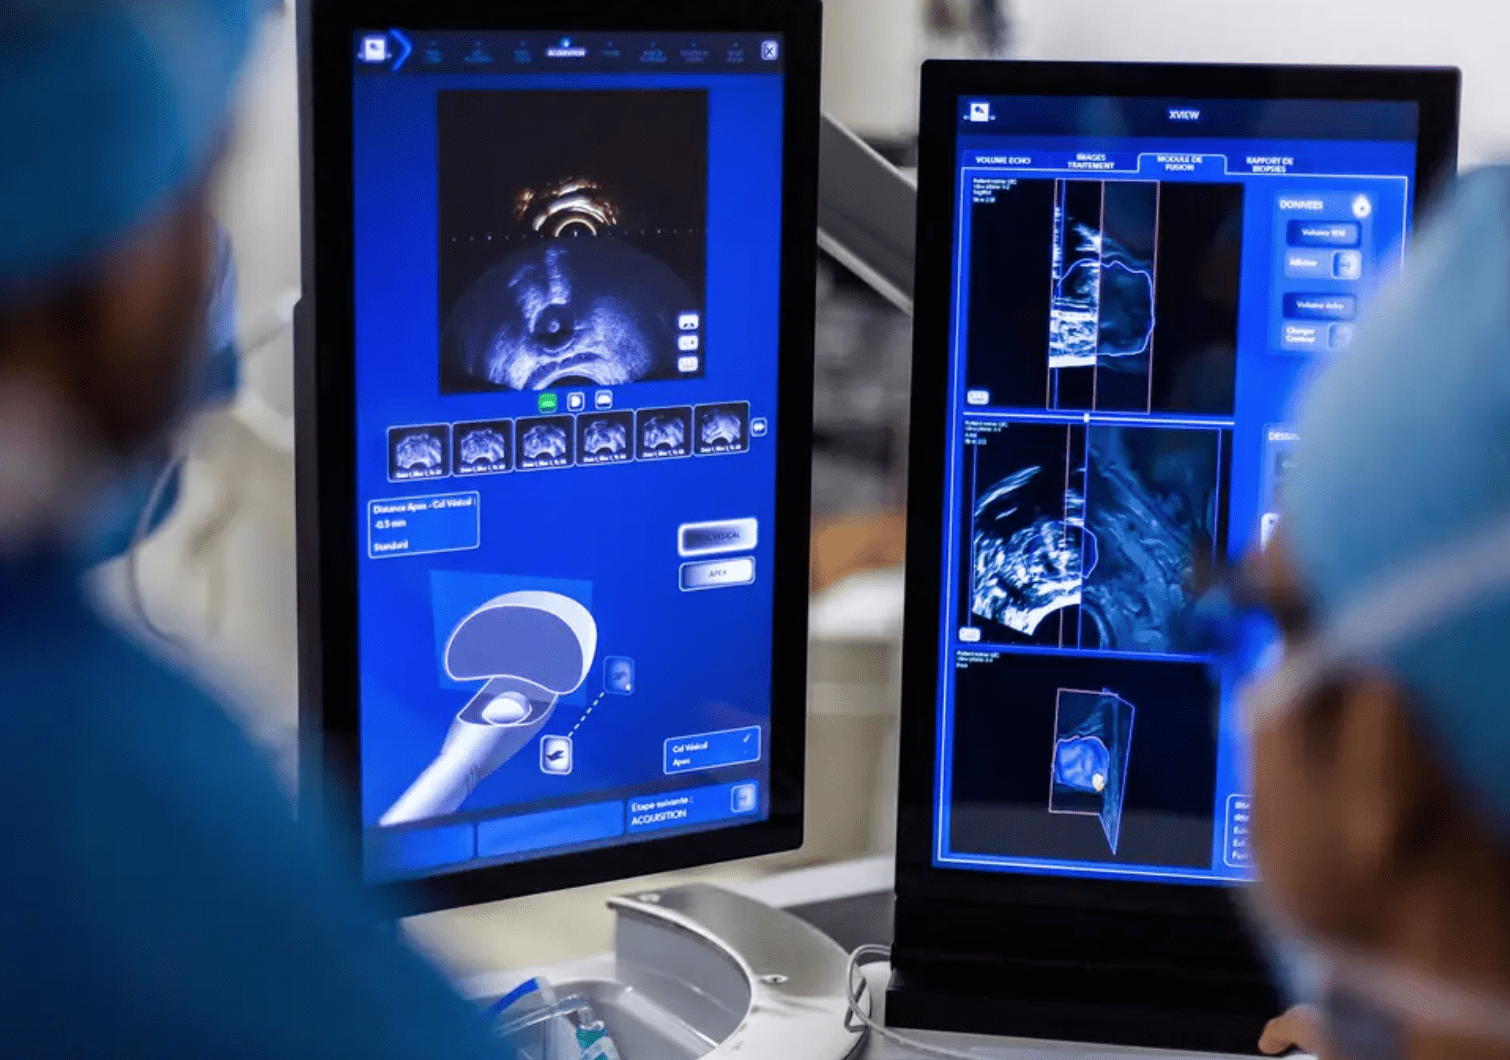 Use of Technology by Laser in Prostate Surgery